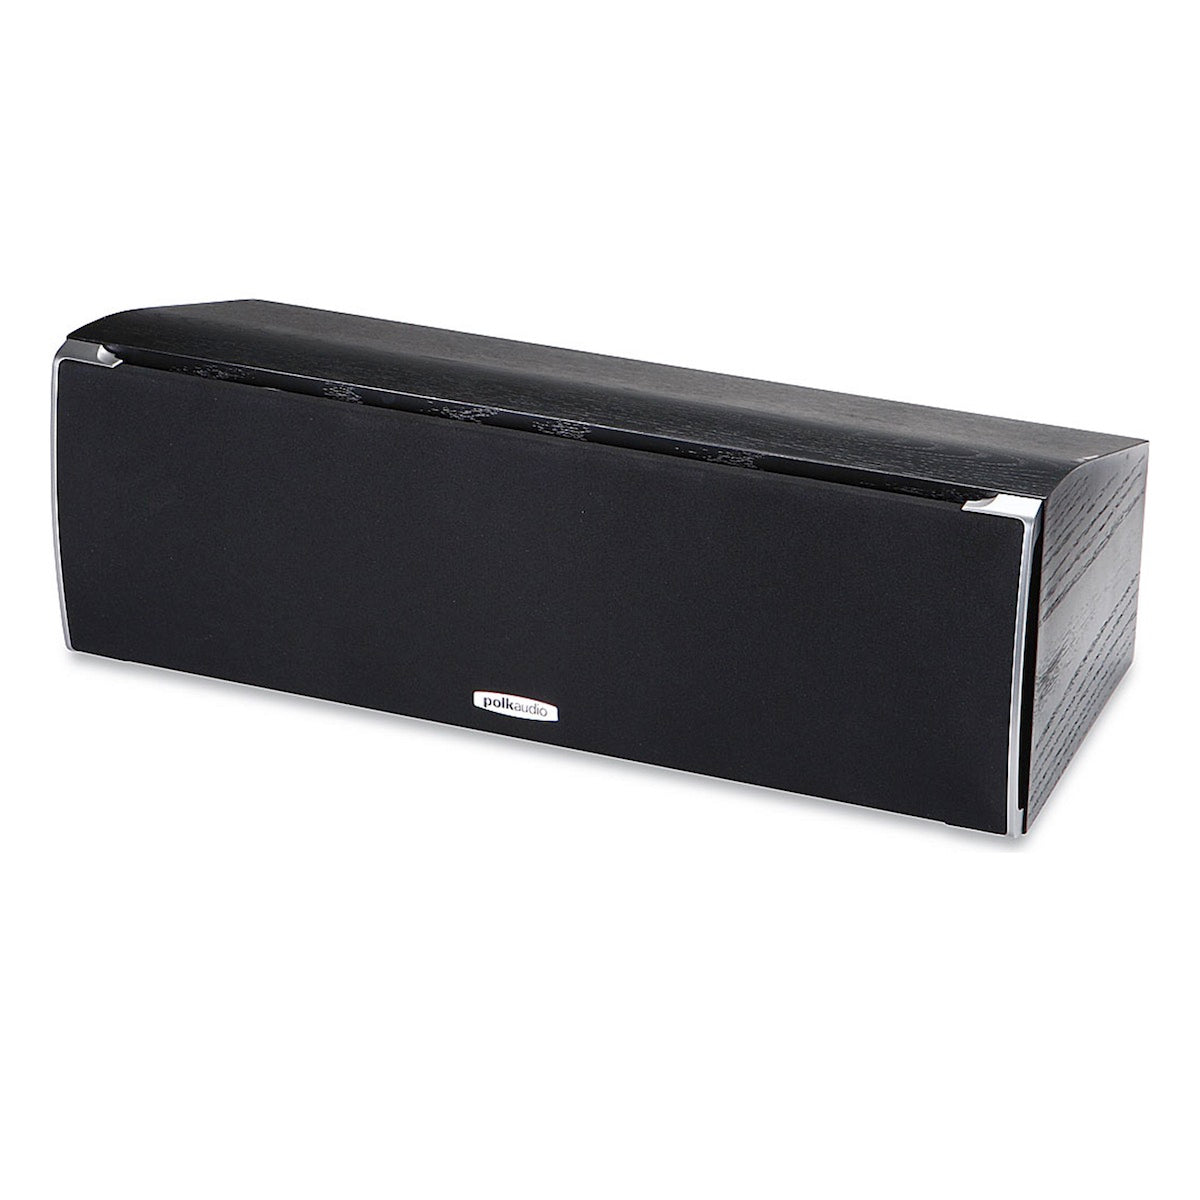 Polk Audio CSi A4 - Centre Speaker - AVStore